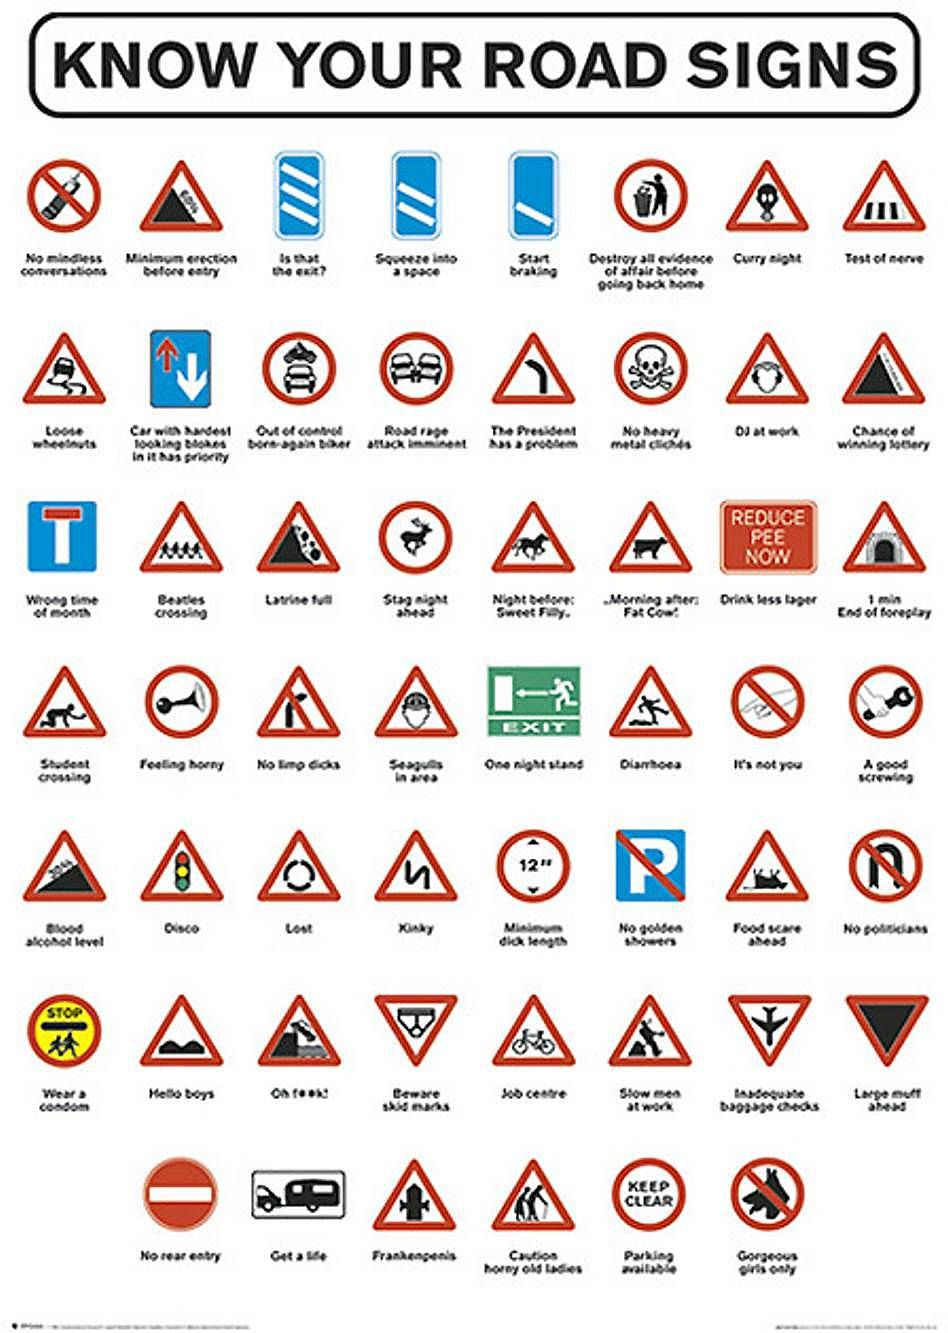 Street signs pictures road signs recipes pinterest explore traffic sign street signs and more biocorpaavc Choice Image